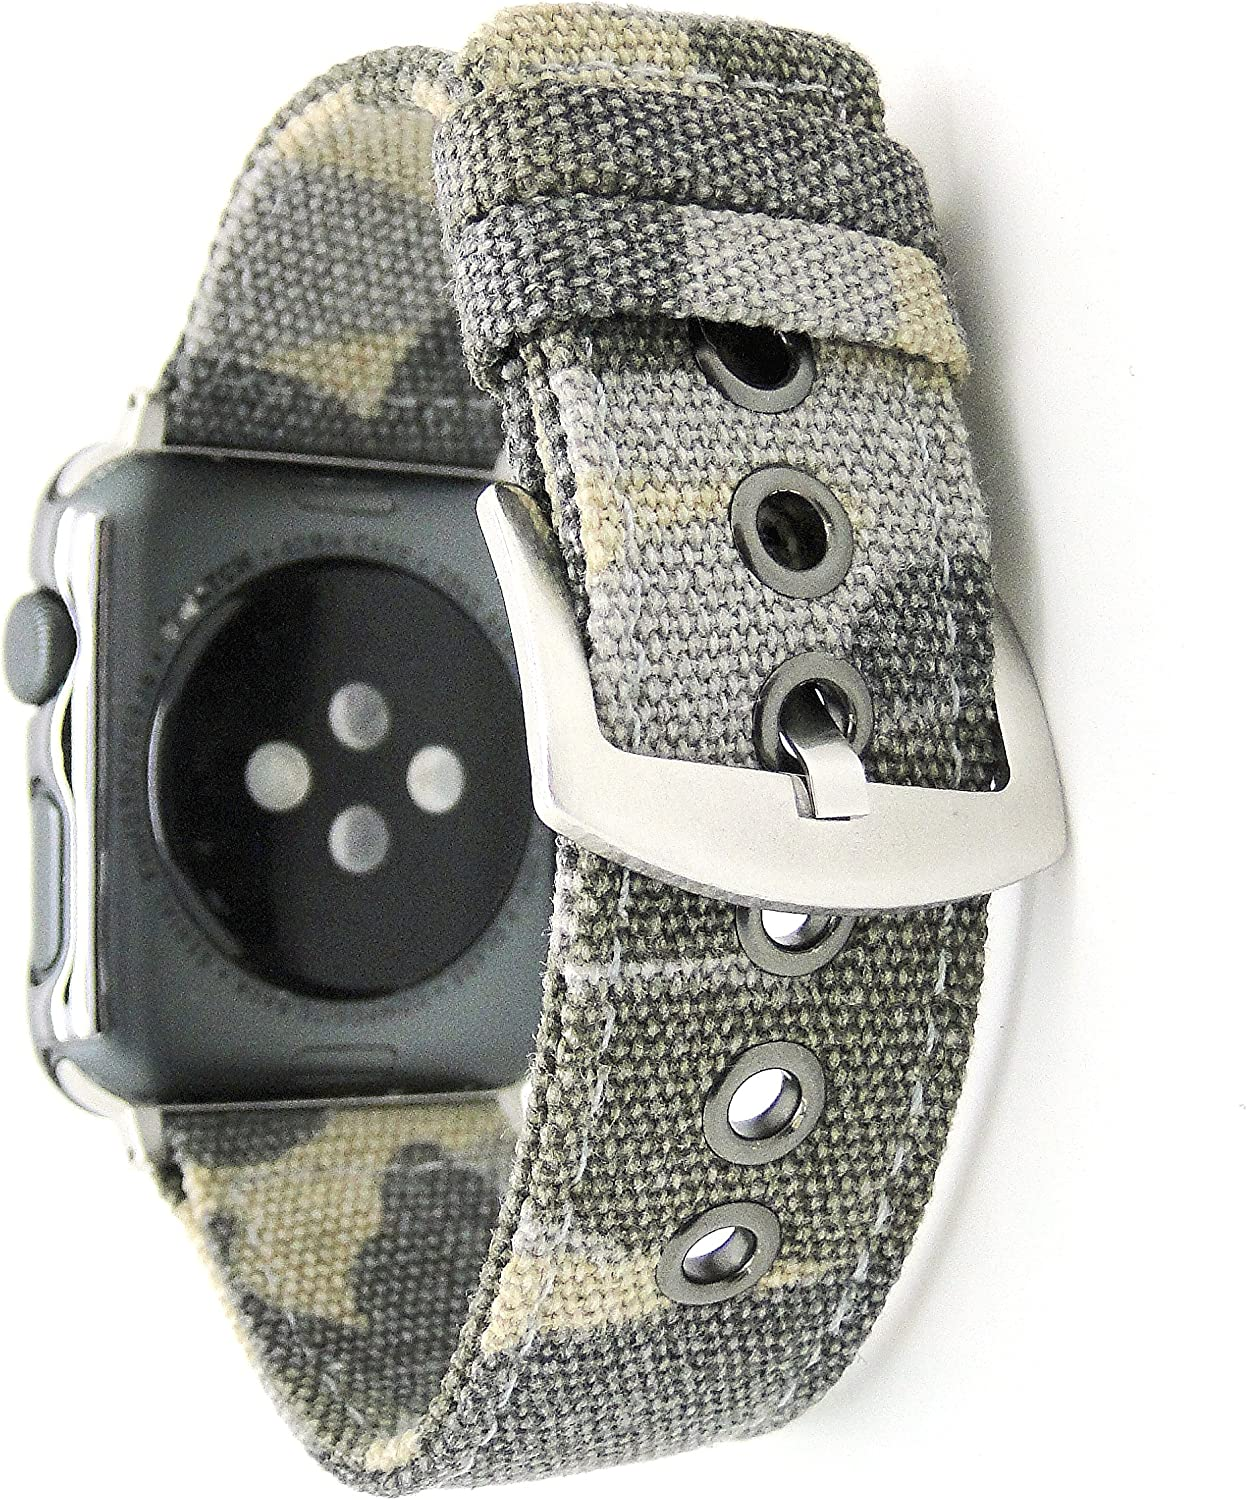 NewSilkRoad for Apple Watch Band 38mm,Canvas Cotton Woven Bracelet Wrist Strap with Metal Clasp Adapter for iWatch Series 1 Series 2 Series 3 Sport Edition (Camouflage Brown)